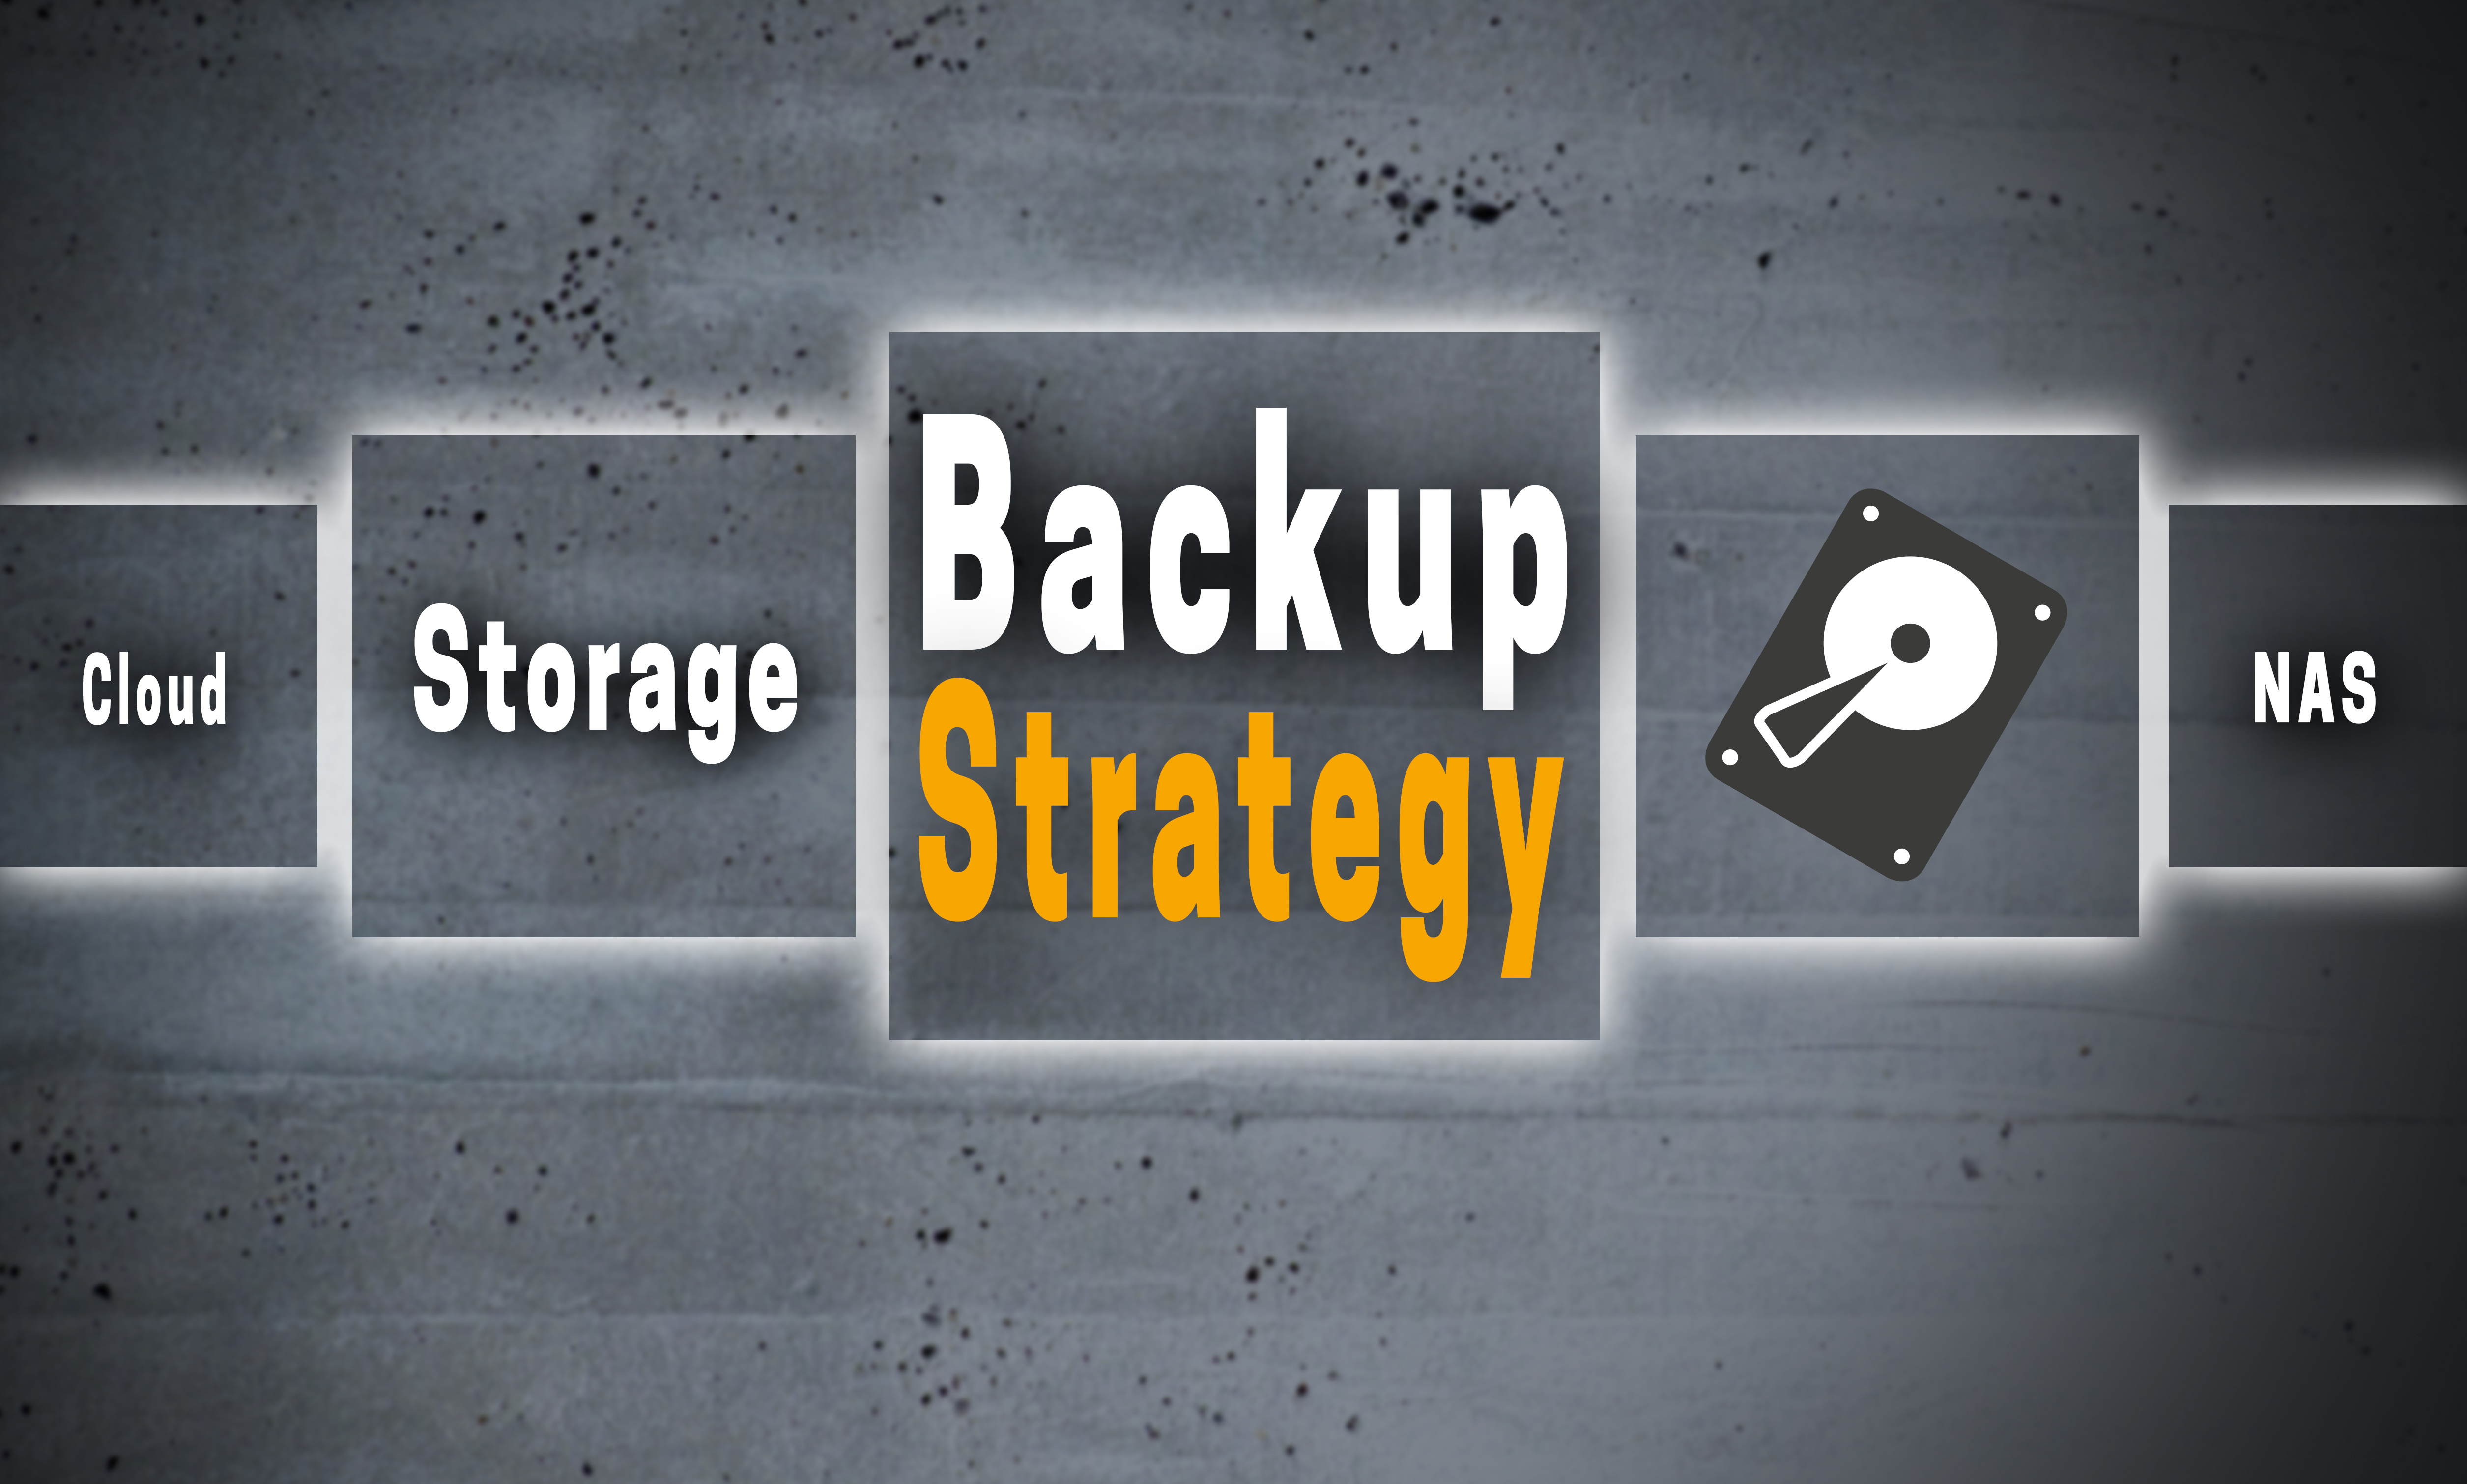 backup strategy text